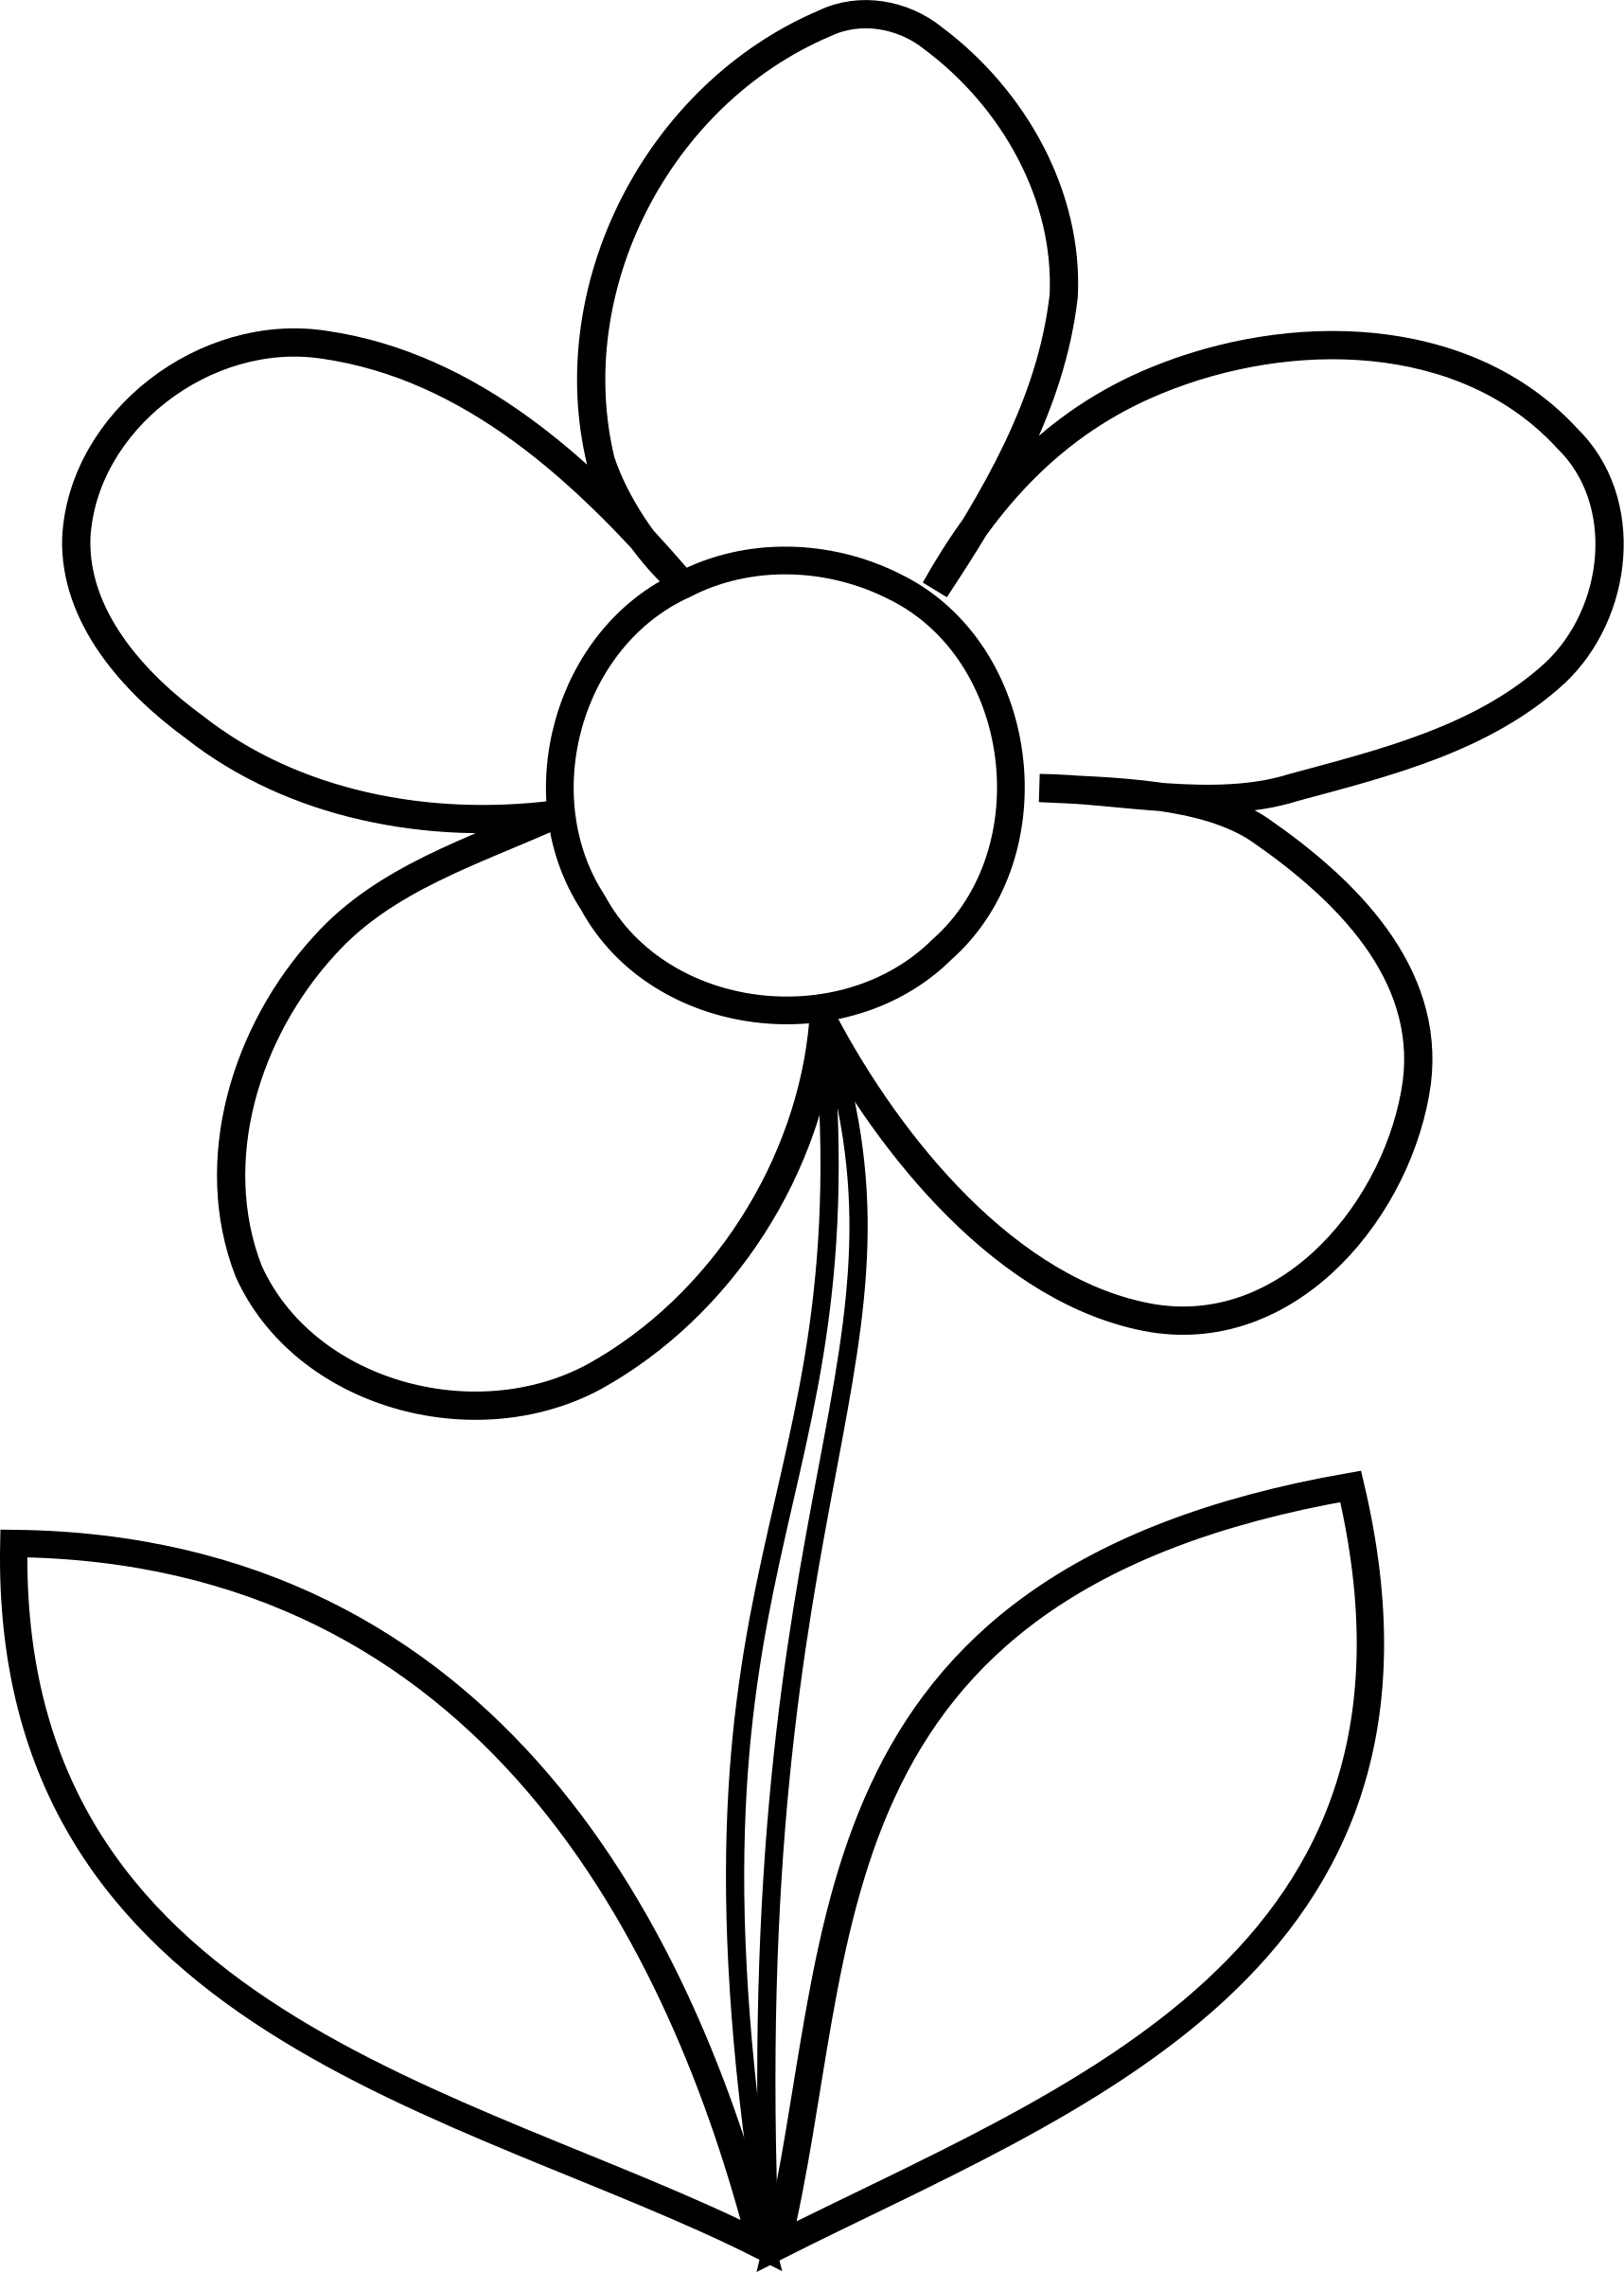 pictures of flowers to color free printables flower coloring pages for adults best coloring pages for color flowers free printables of to pictures